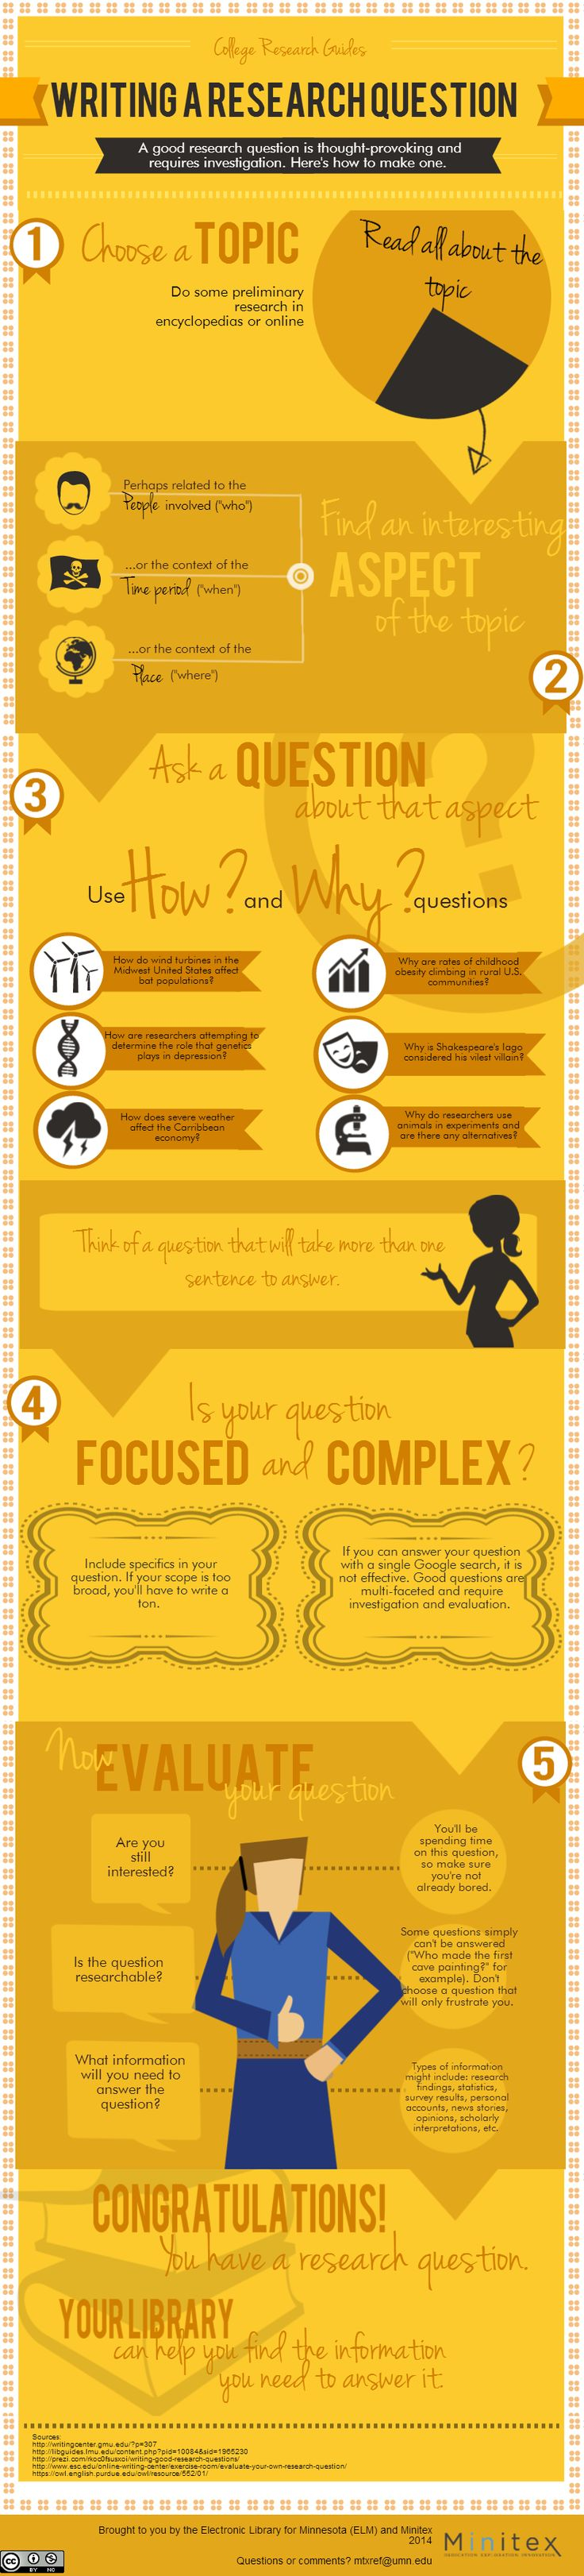 best ideas about research paper college this infographic created by the electronic library for minnesota provides a clear and simple guideline for writing good thought provoking research